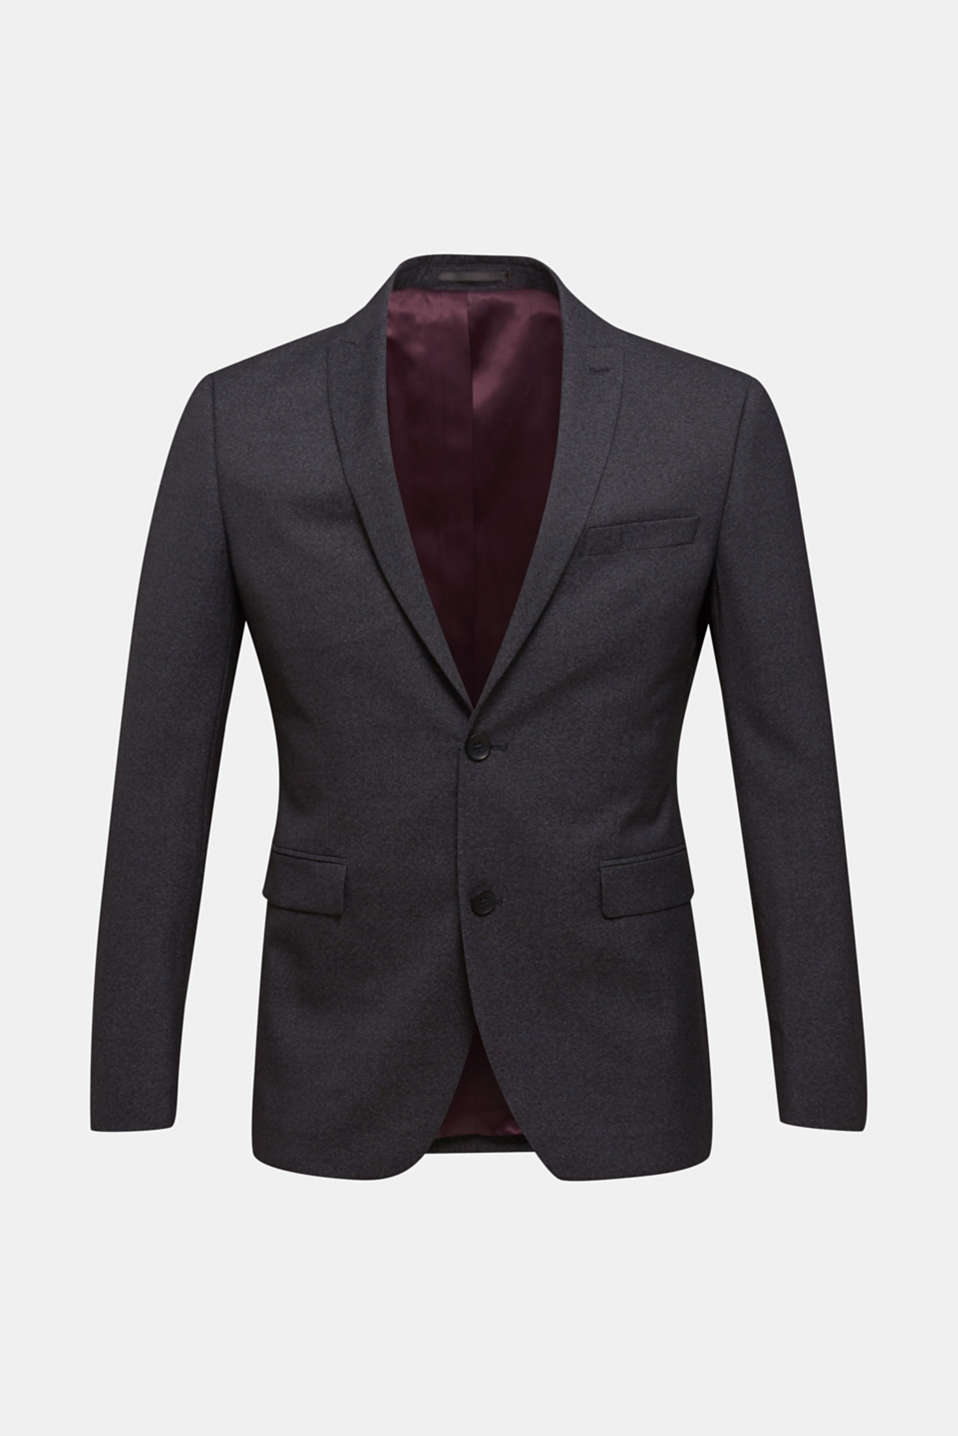 JOGG SUIT mix + match: sports jacket, DARK GREY 5, detail image number 7